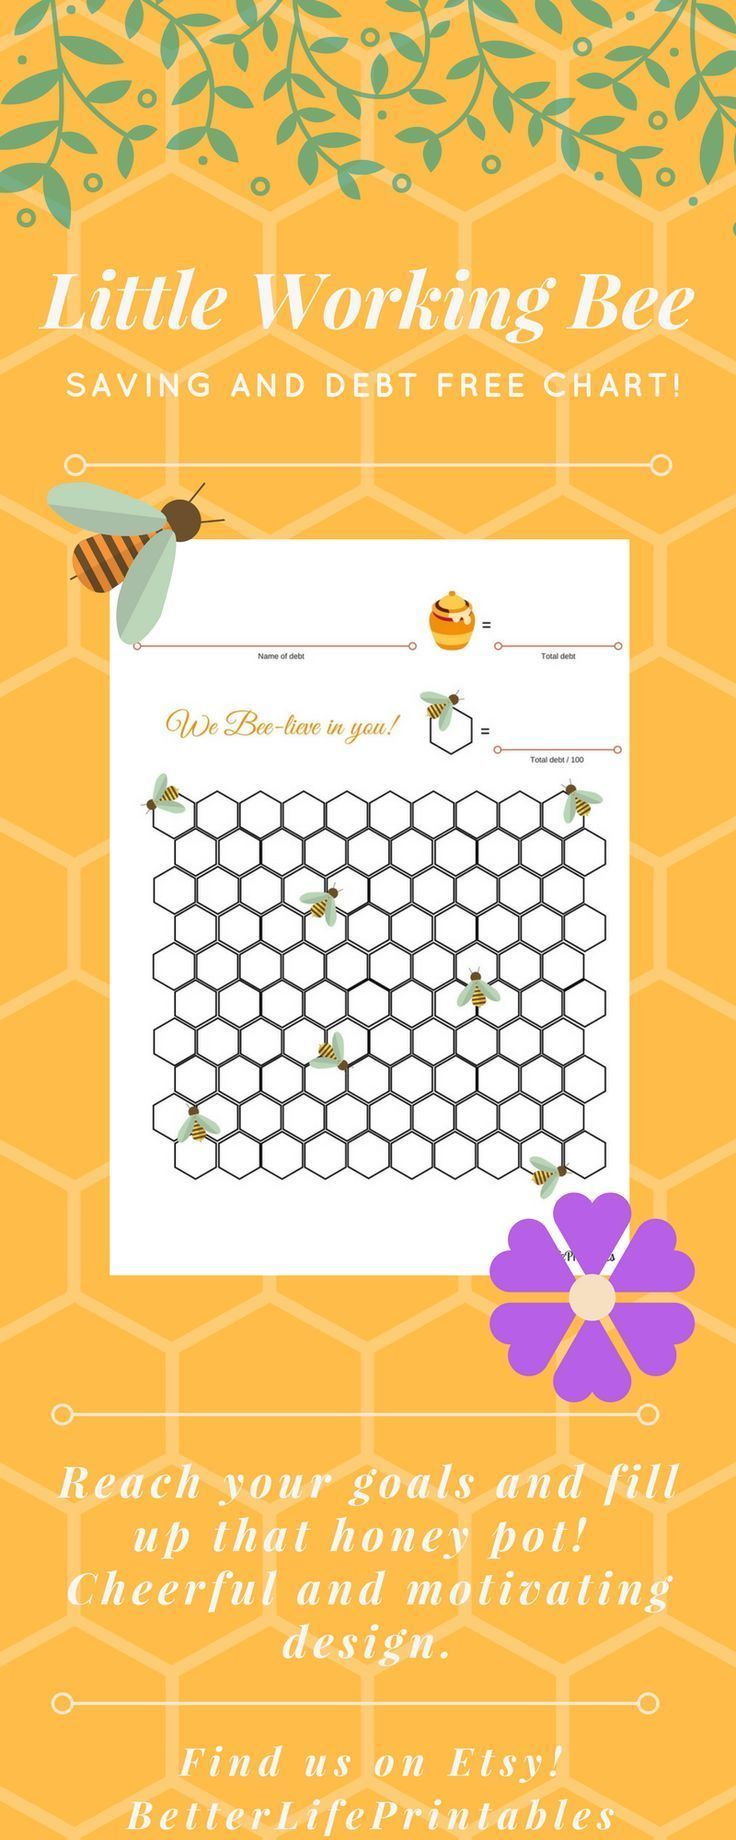 Reach your goals with this cute working bee goal chart! Choose between debt-free text and saving goal text. Perfect to get that spring and summer feeling! Let yourself bee encouraged! #debtfreechart #etsyprintable #debtsnowball